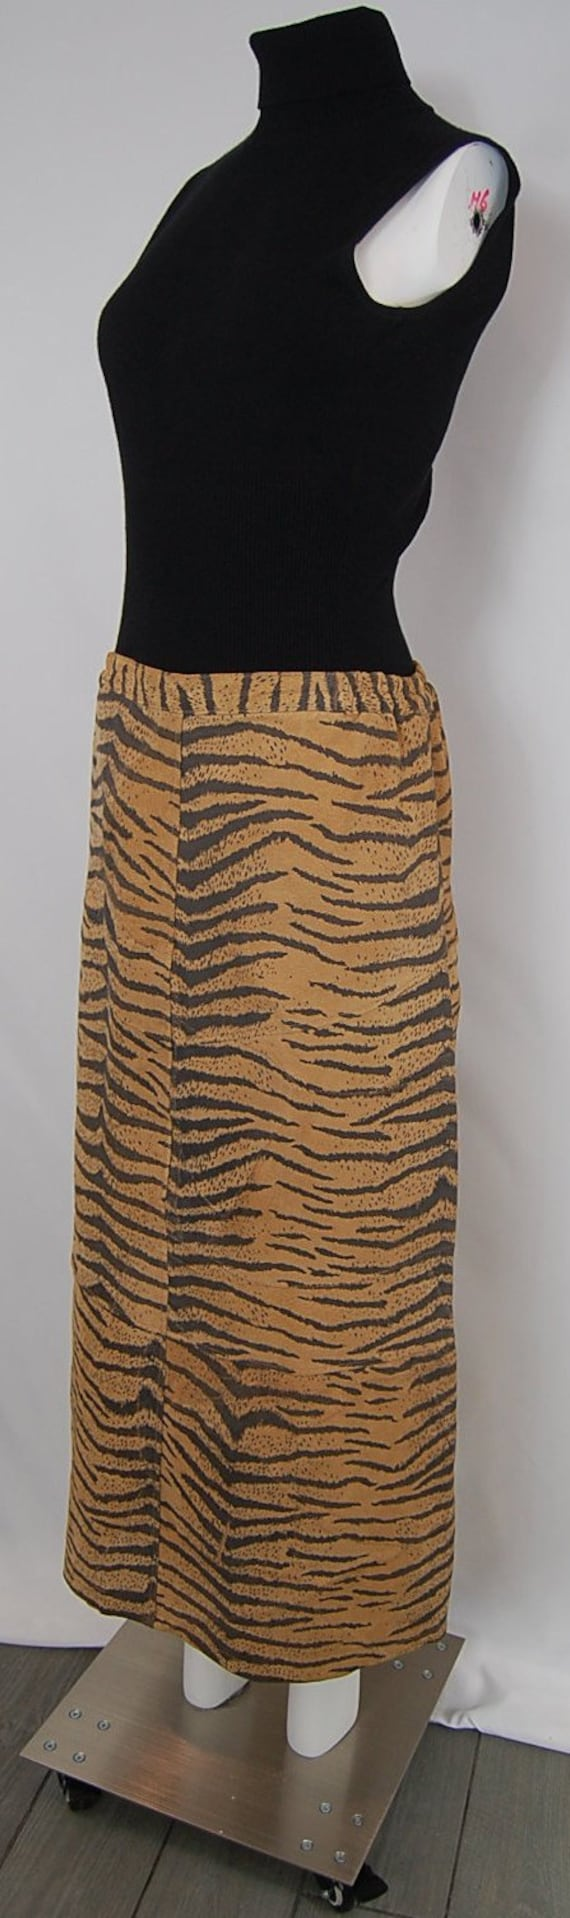 Tiger striped maxi skirt in camel and black suede